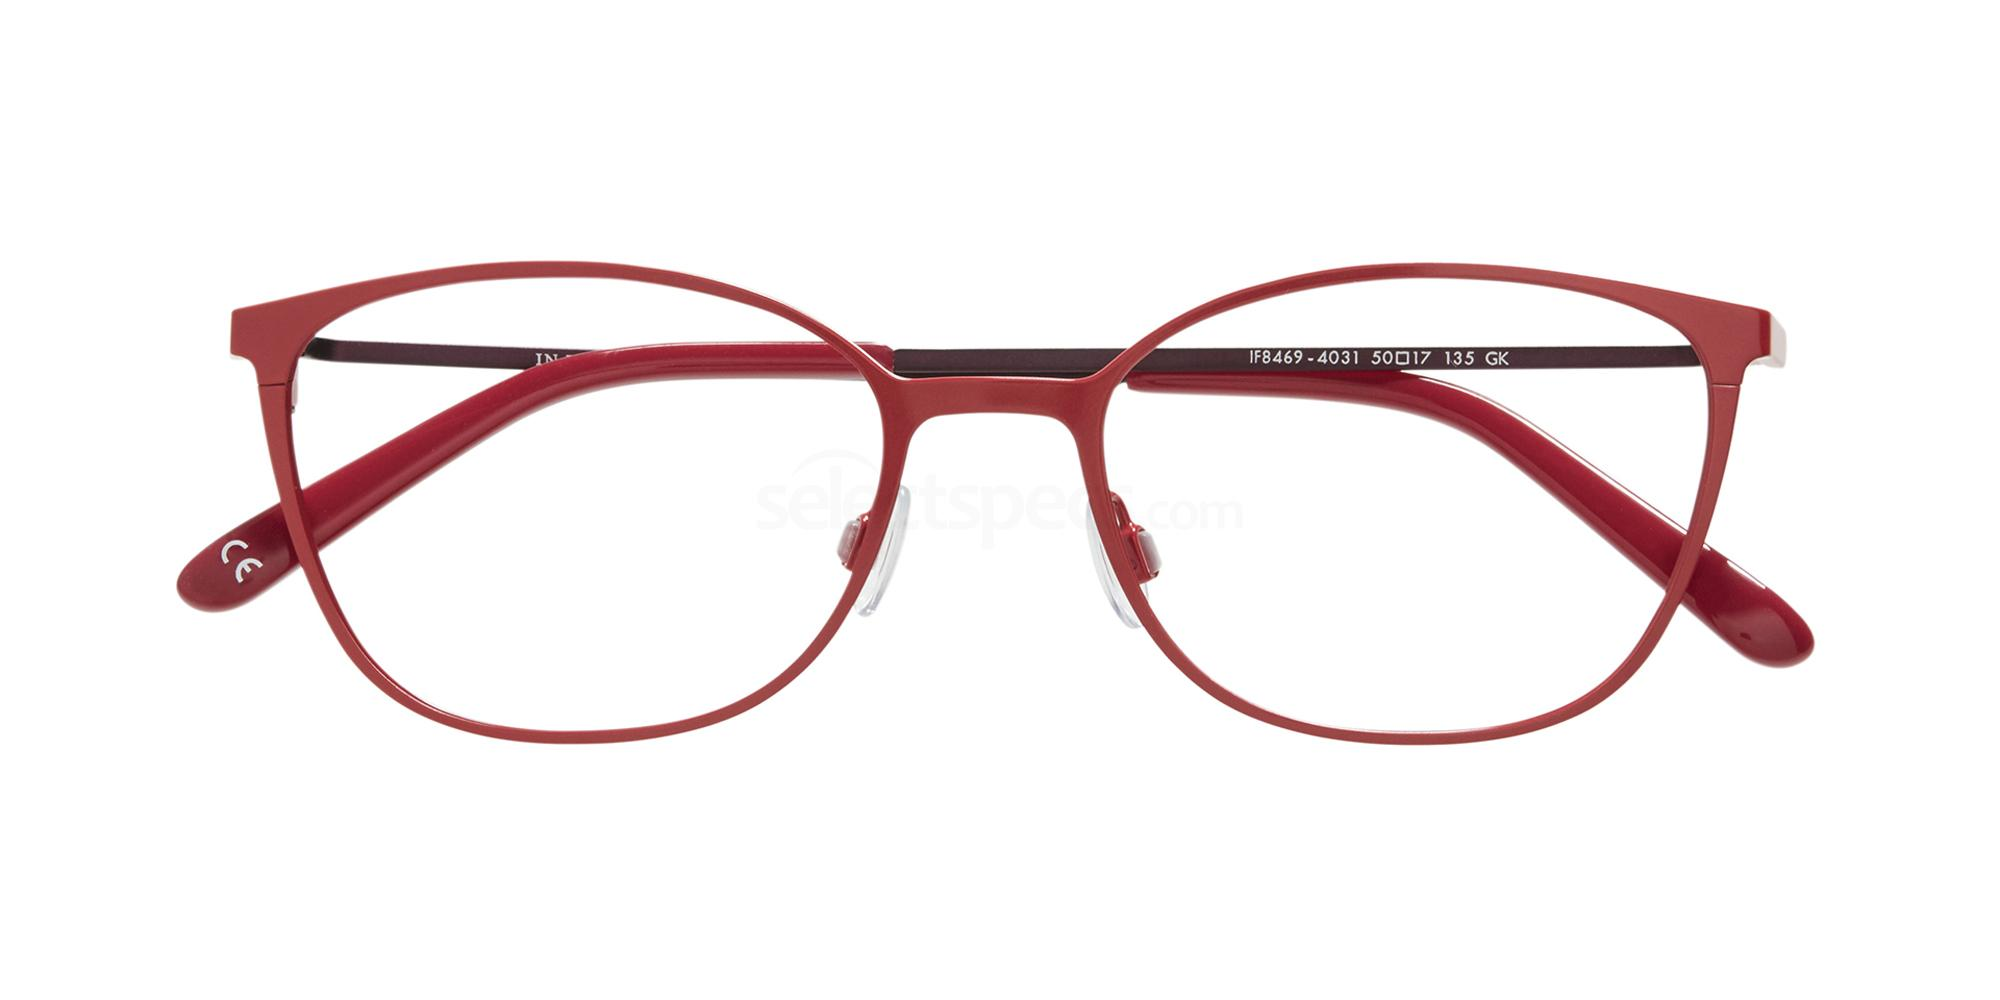 4031 IF8469 Glasses, Inface in Love